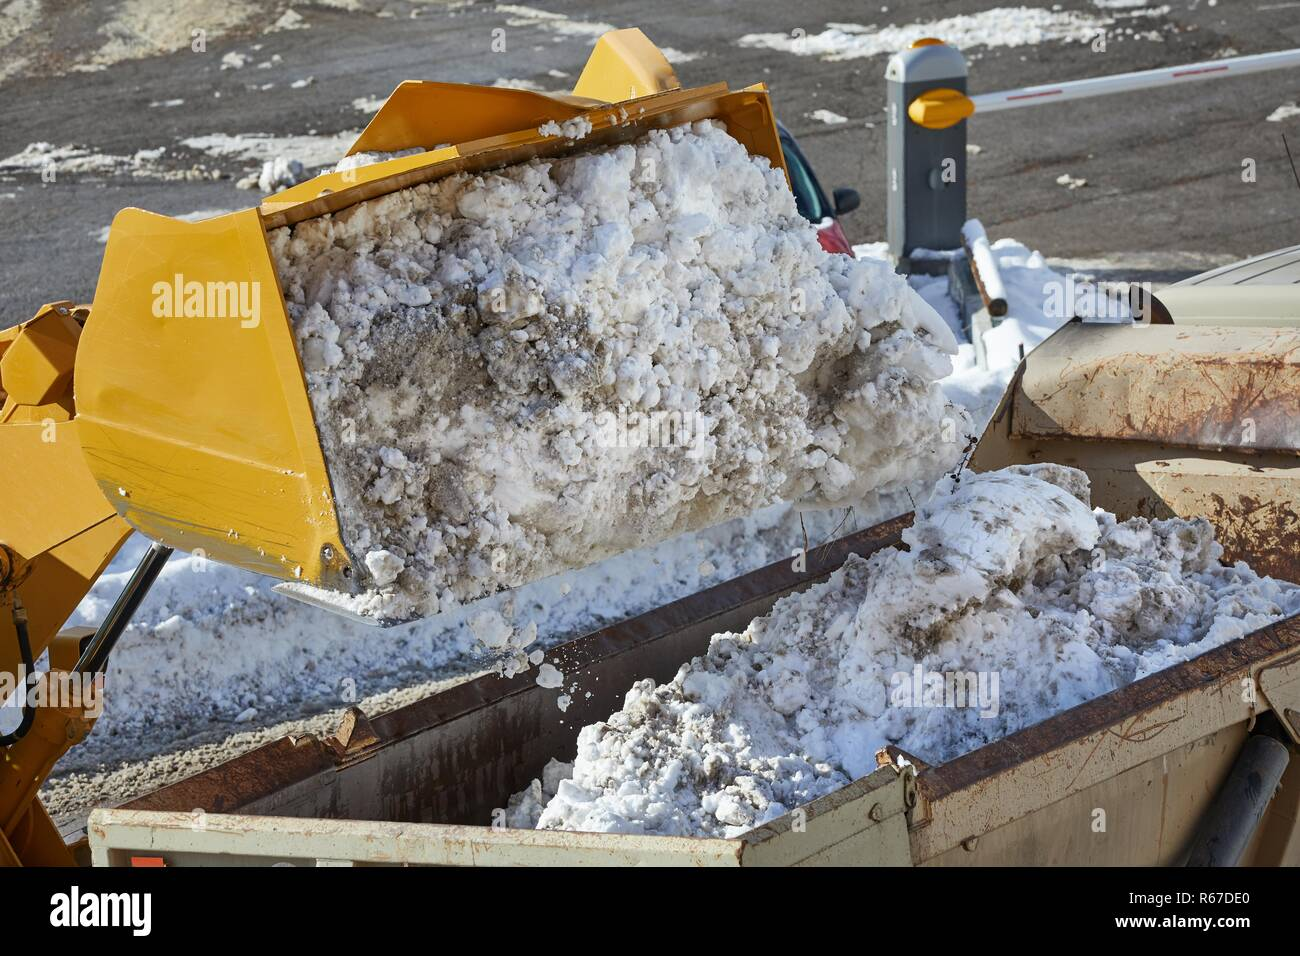 Loader removing snow from street Stock Photo